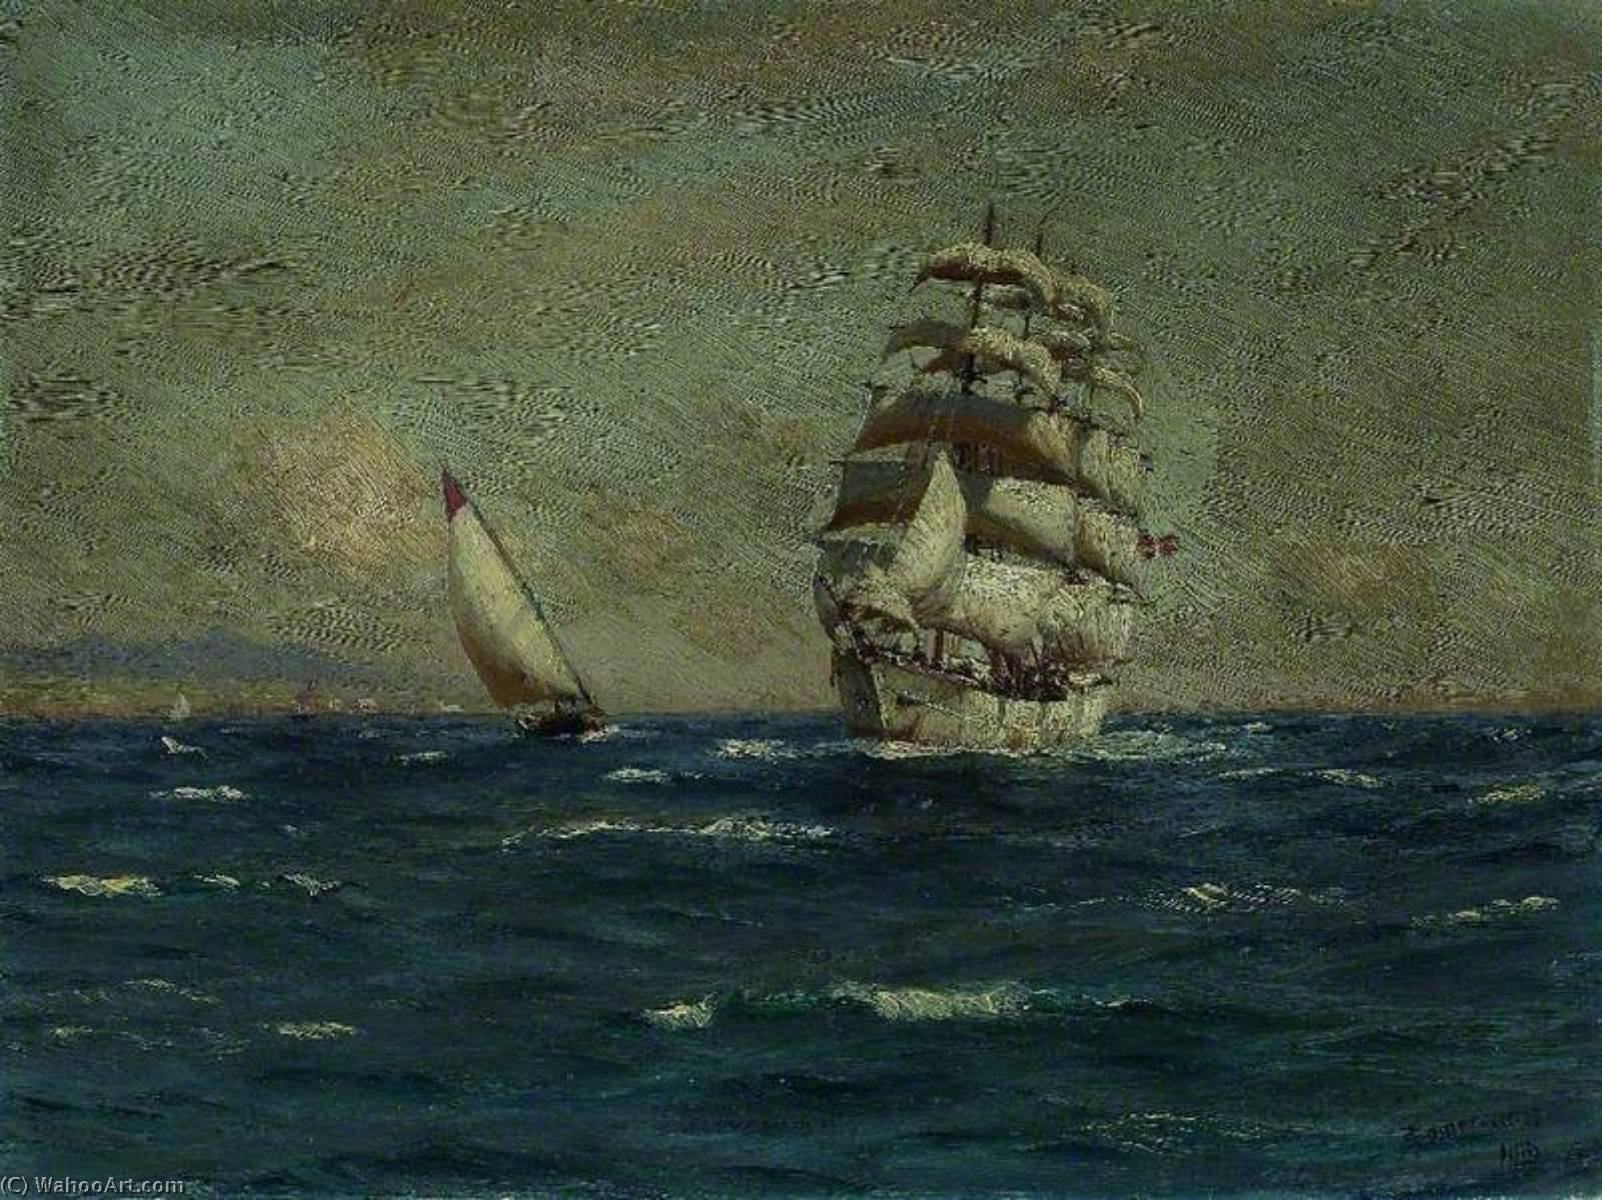 Sailing Vessels off the Coast, Oil On Canvas by Thomas Jacques Somerscales (1842-1927)